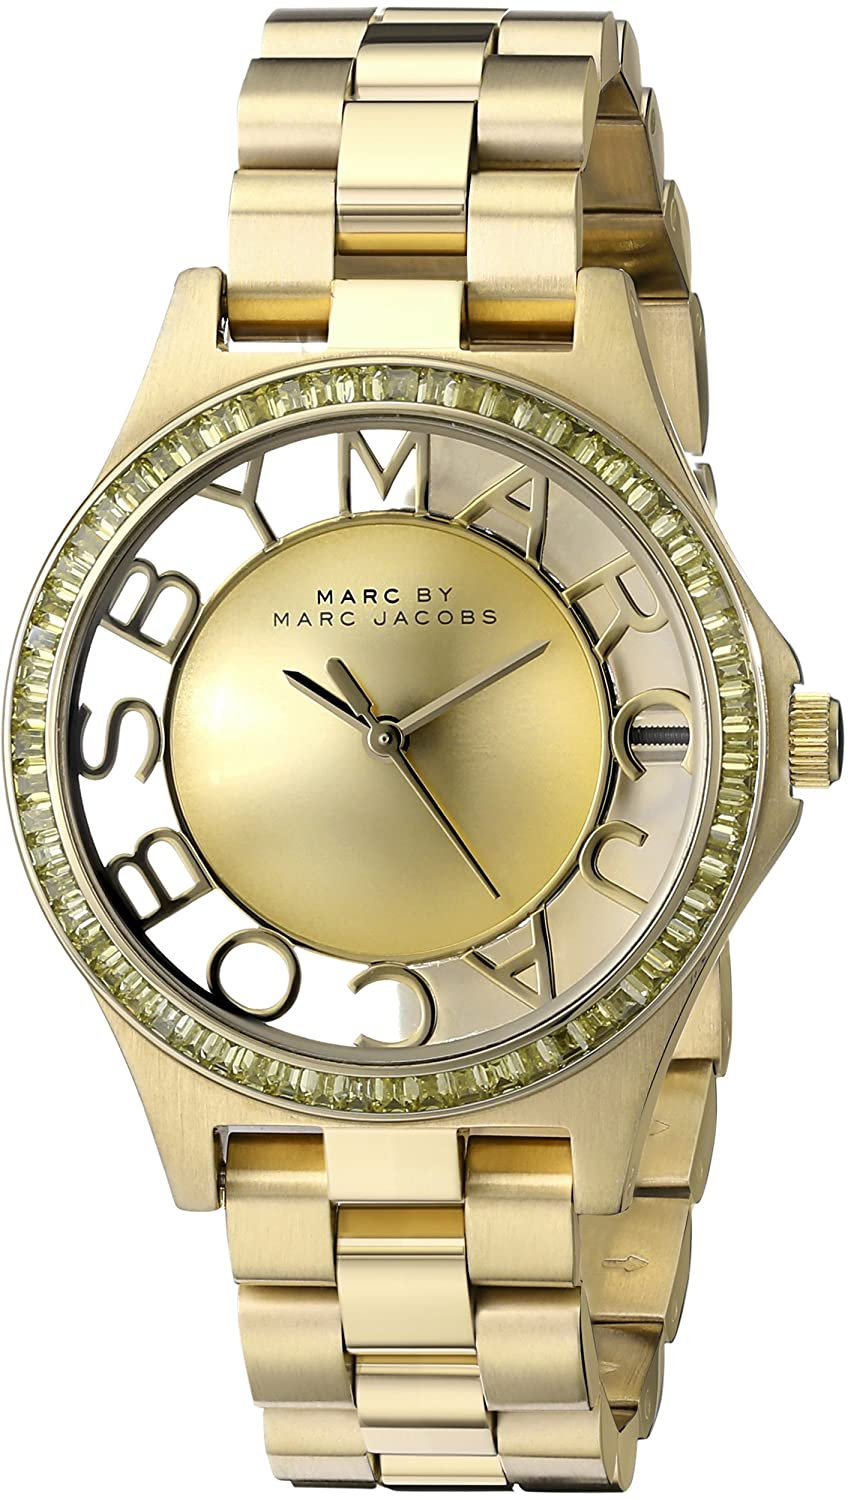 By Bracelet Tone Gold Jacobs Steel Stainless Marc Watch Mbm3338 Skeleton Women's YHb9IeWED2